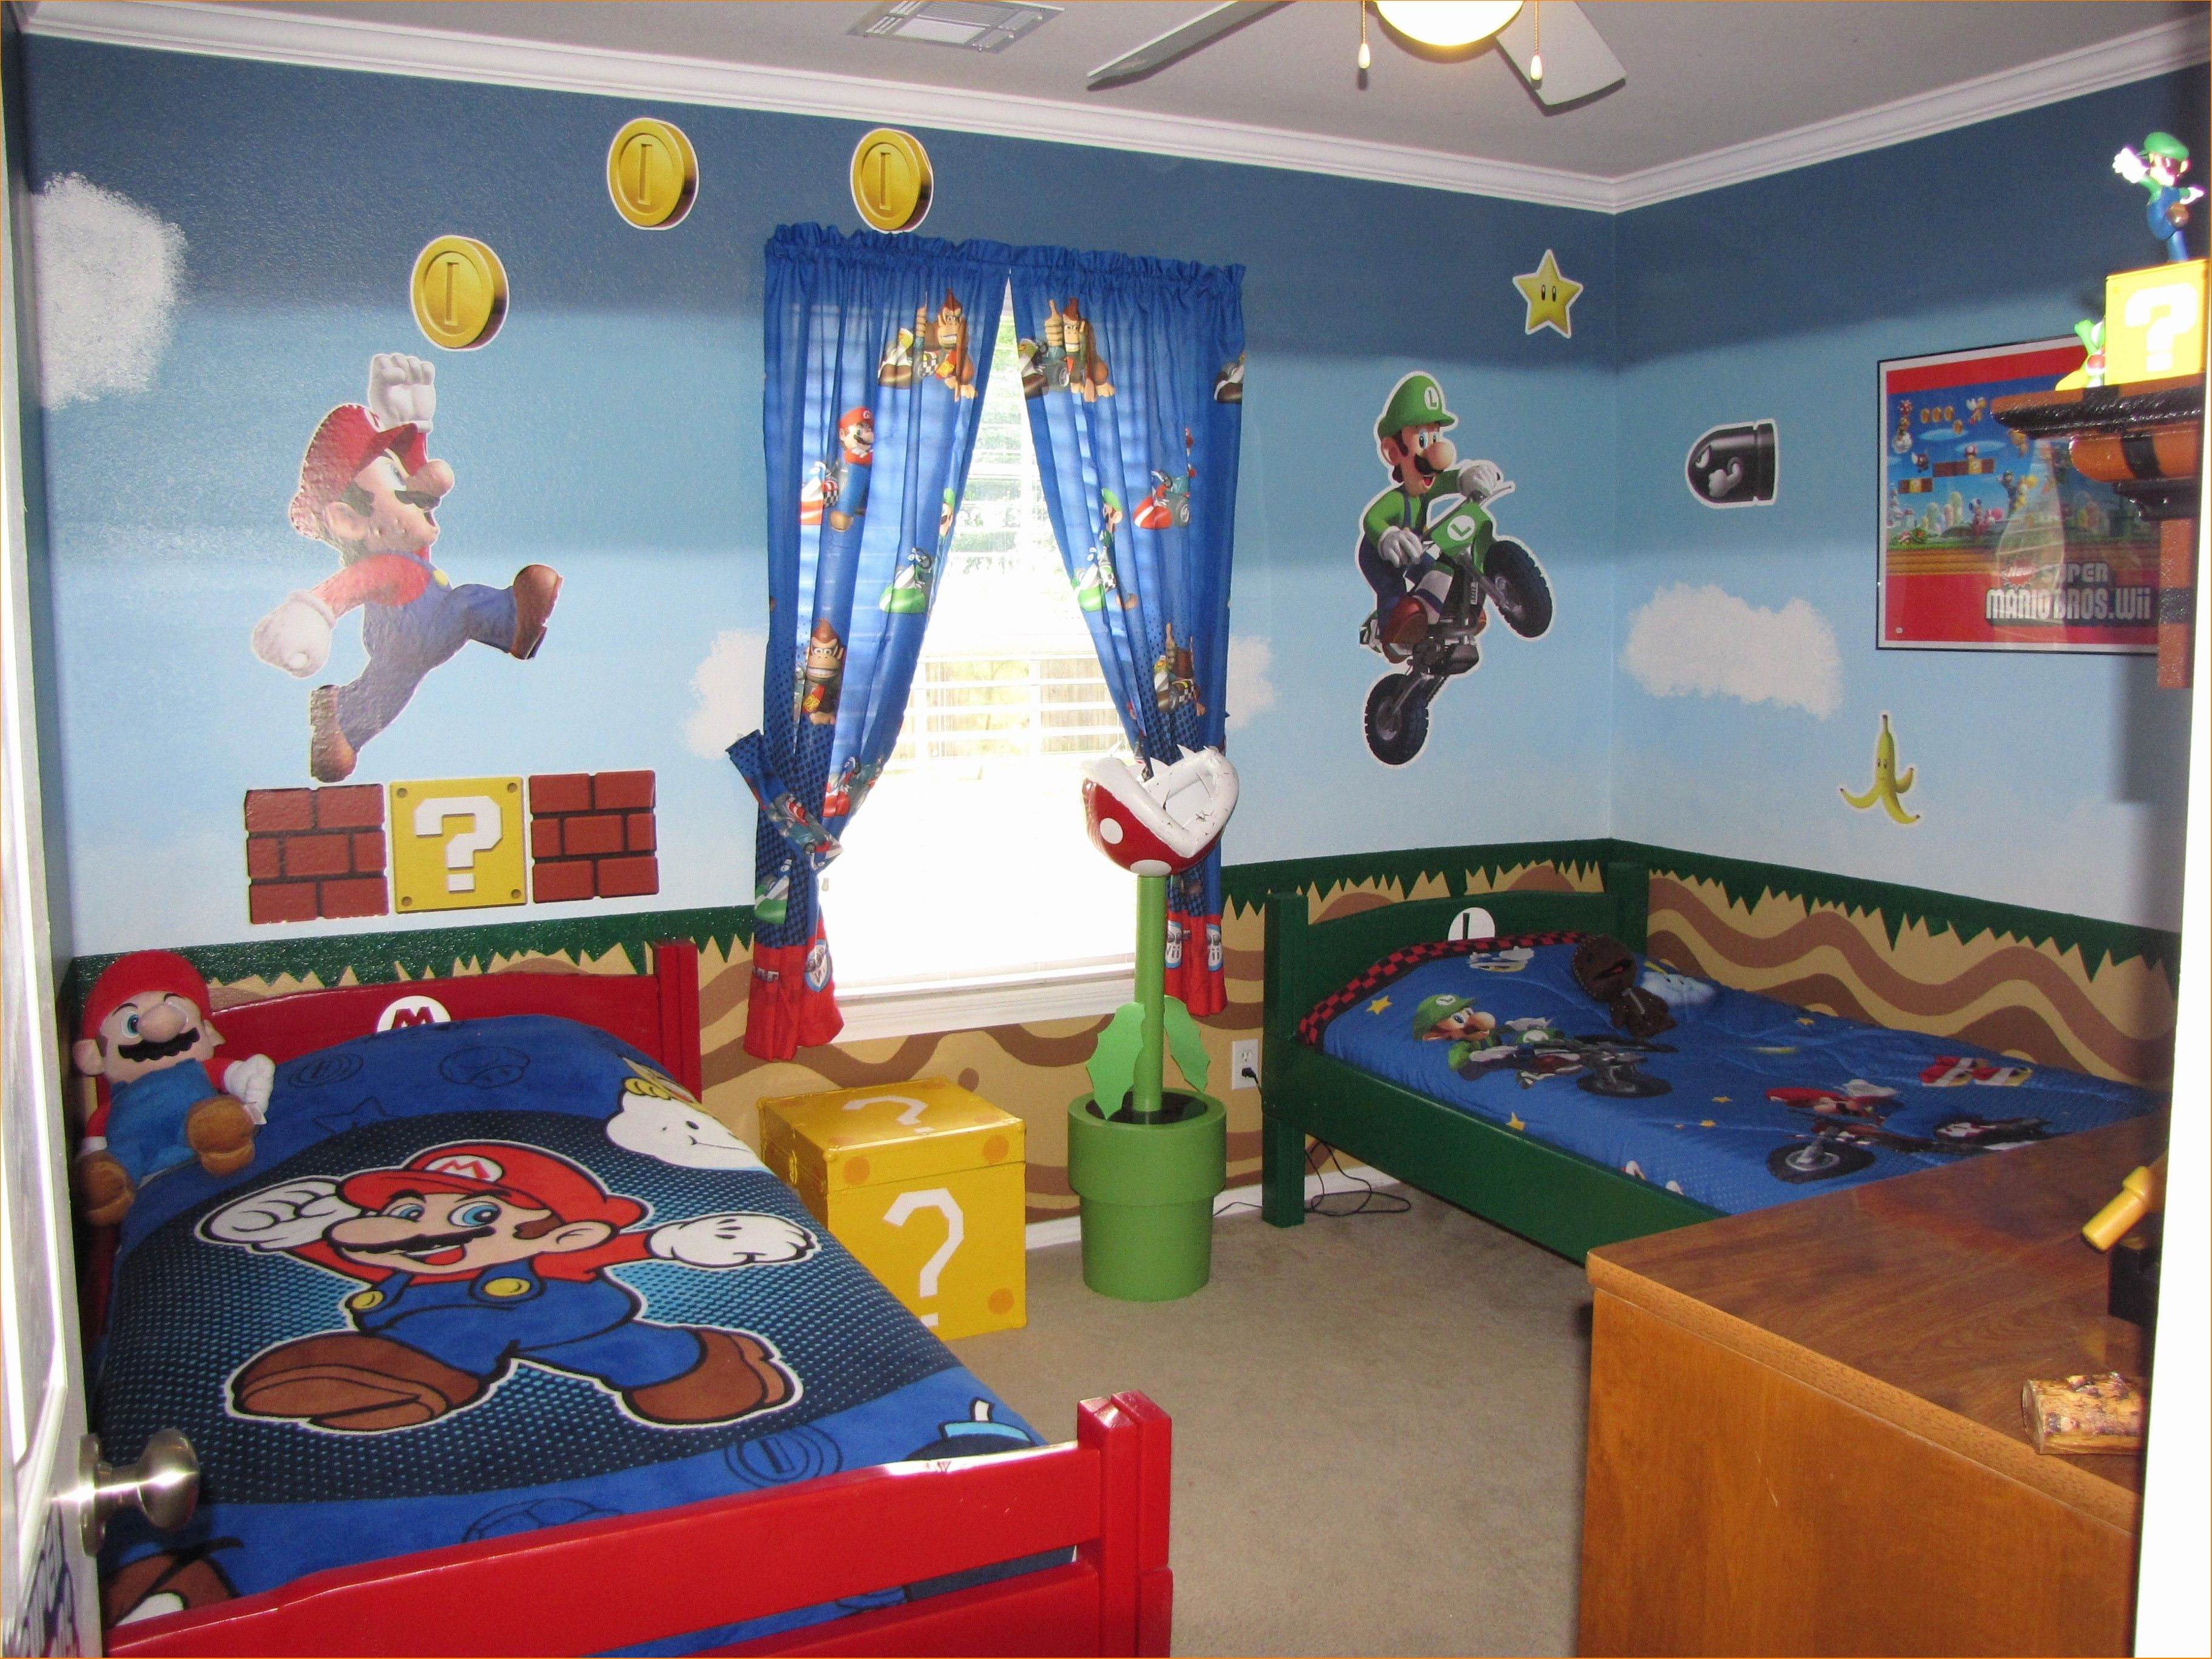 20 Interesting 2 Year Old Nursery Room Ideas Allowed For You To My Personal Blog Within This Period I Ll Boy Room Themes Baby Boy Room Decor Kid Room Decor